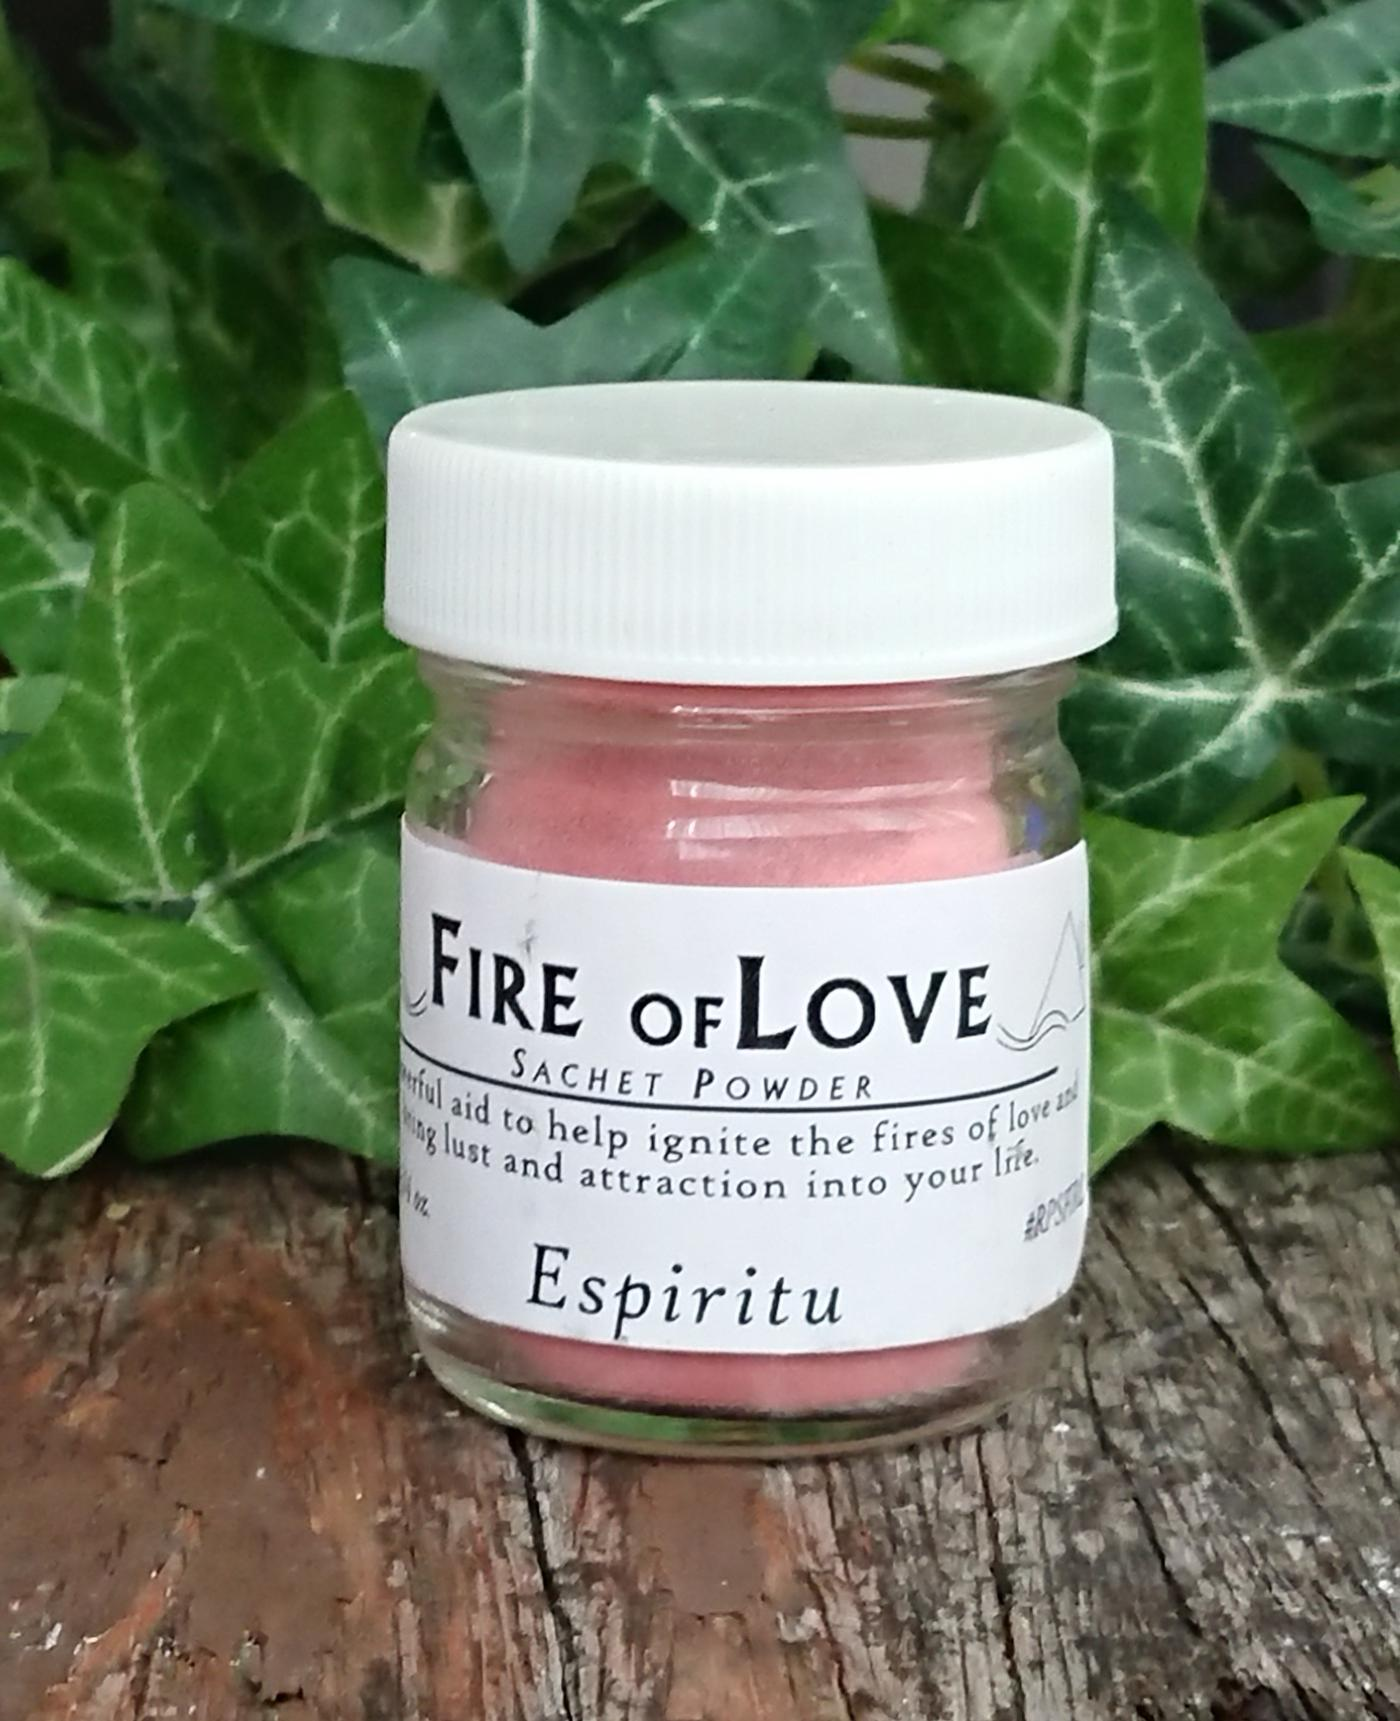 Fire of Love powder jar